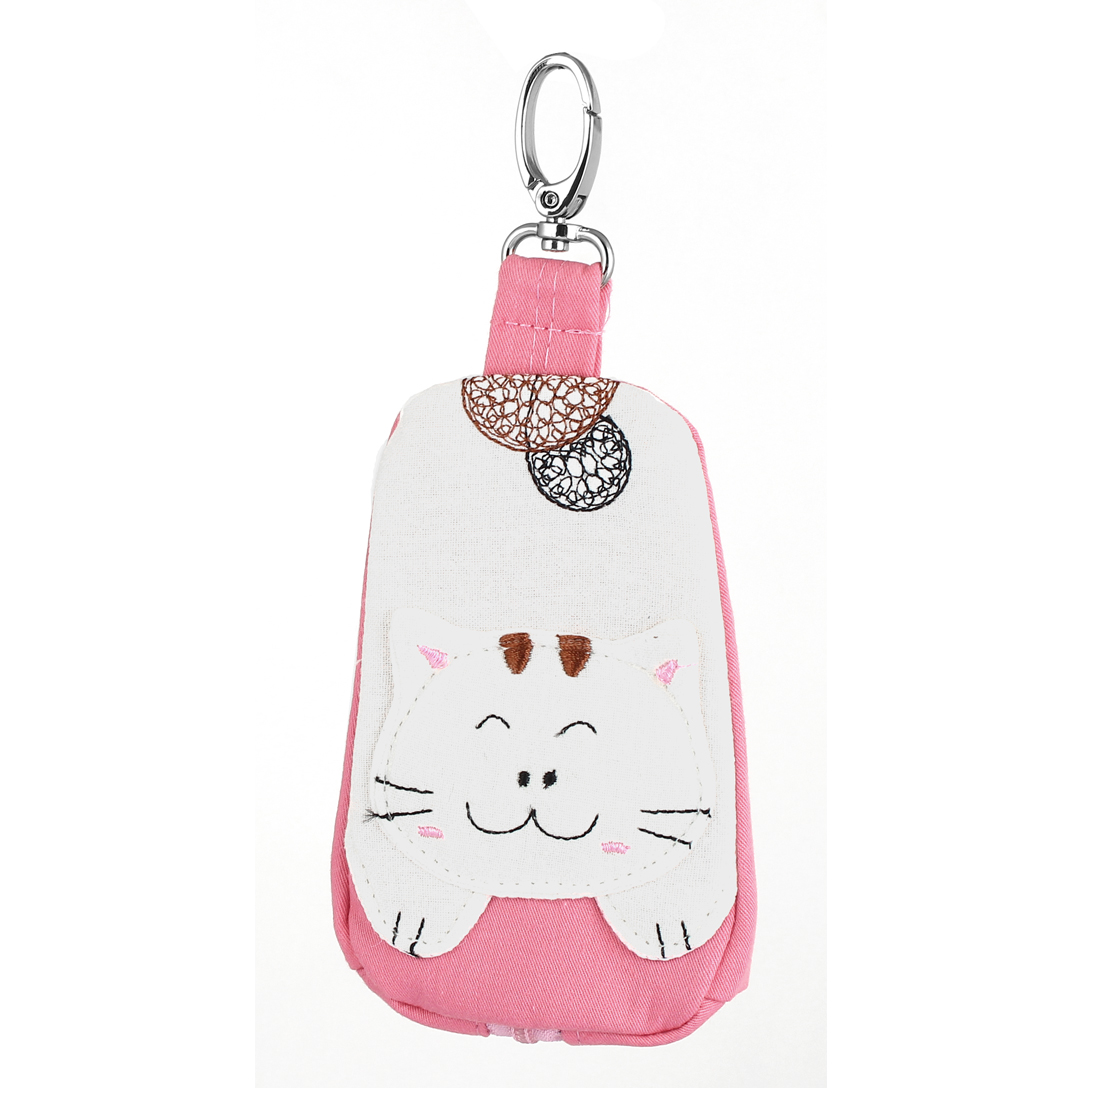 Lobster Clasp Zippered Cat Pattern Key Coin Card Holder Bag Purse Wallet Pink